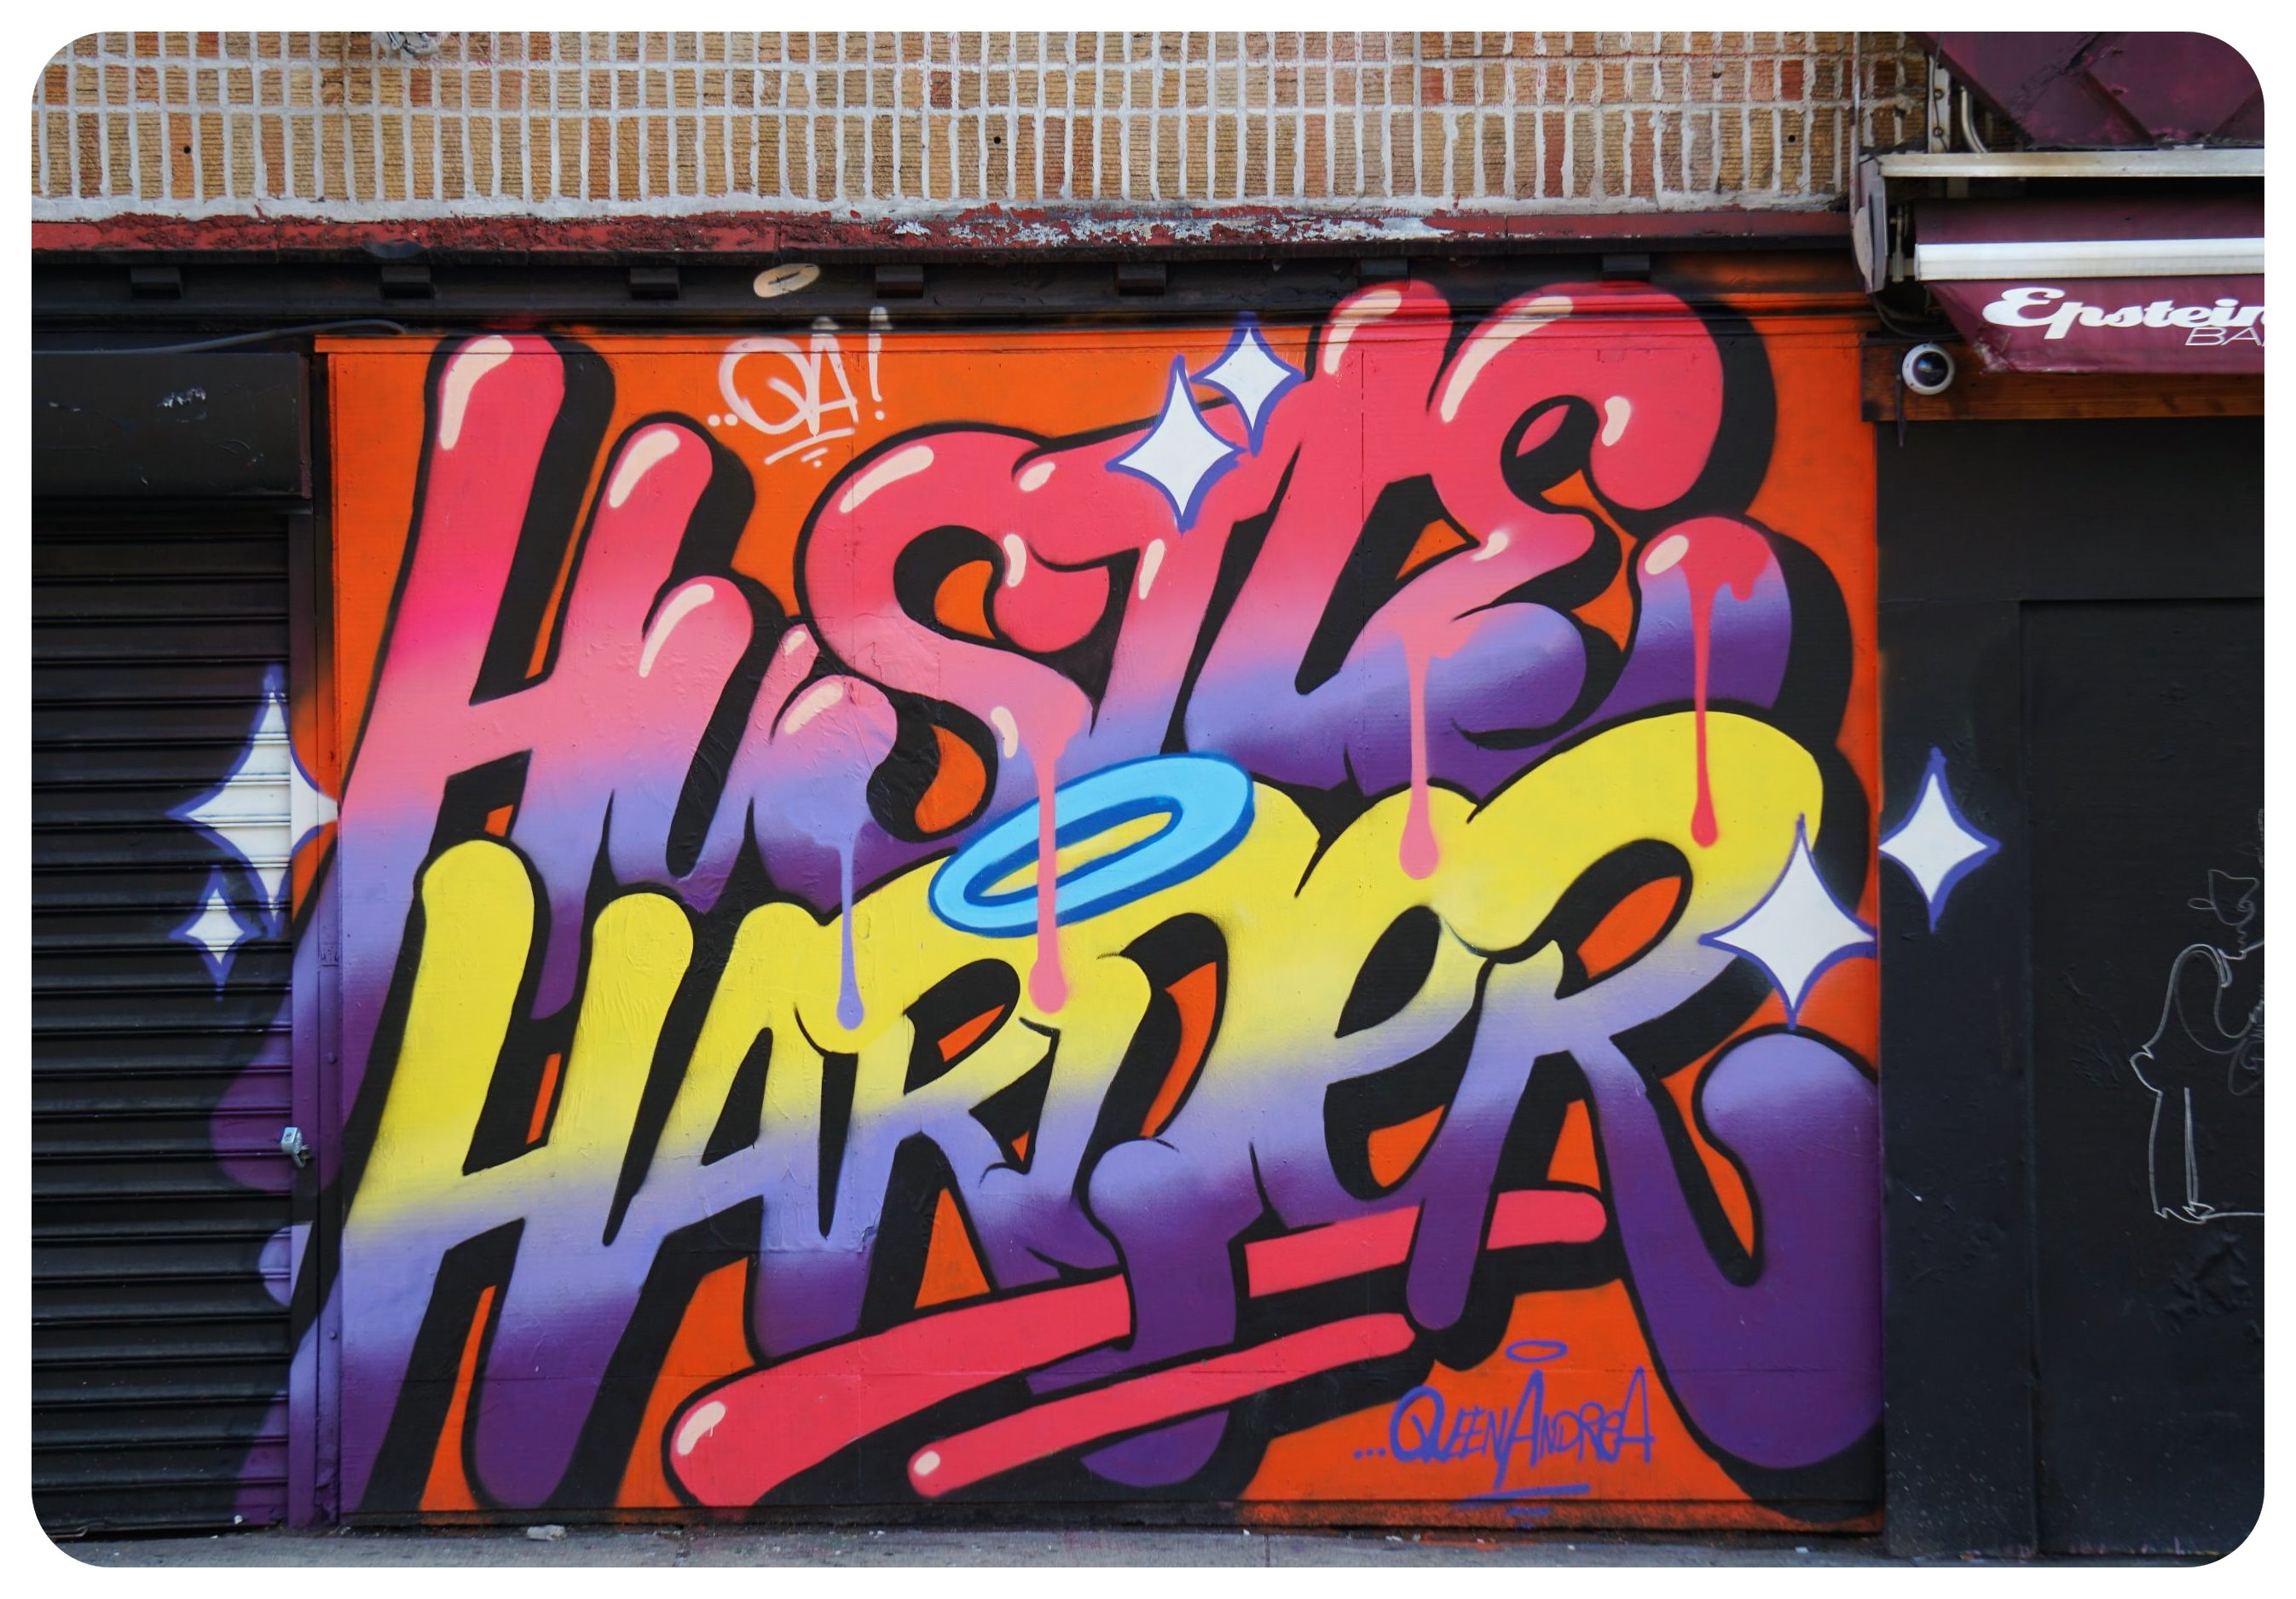 hustle harder street art